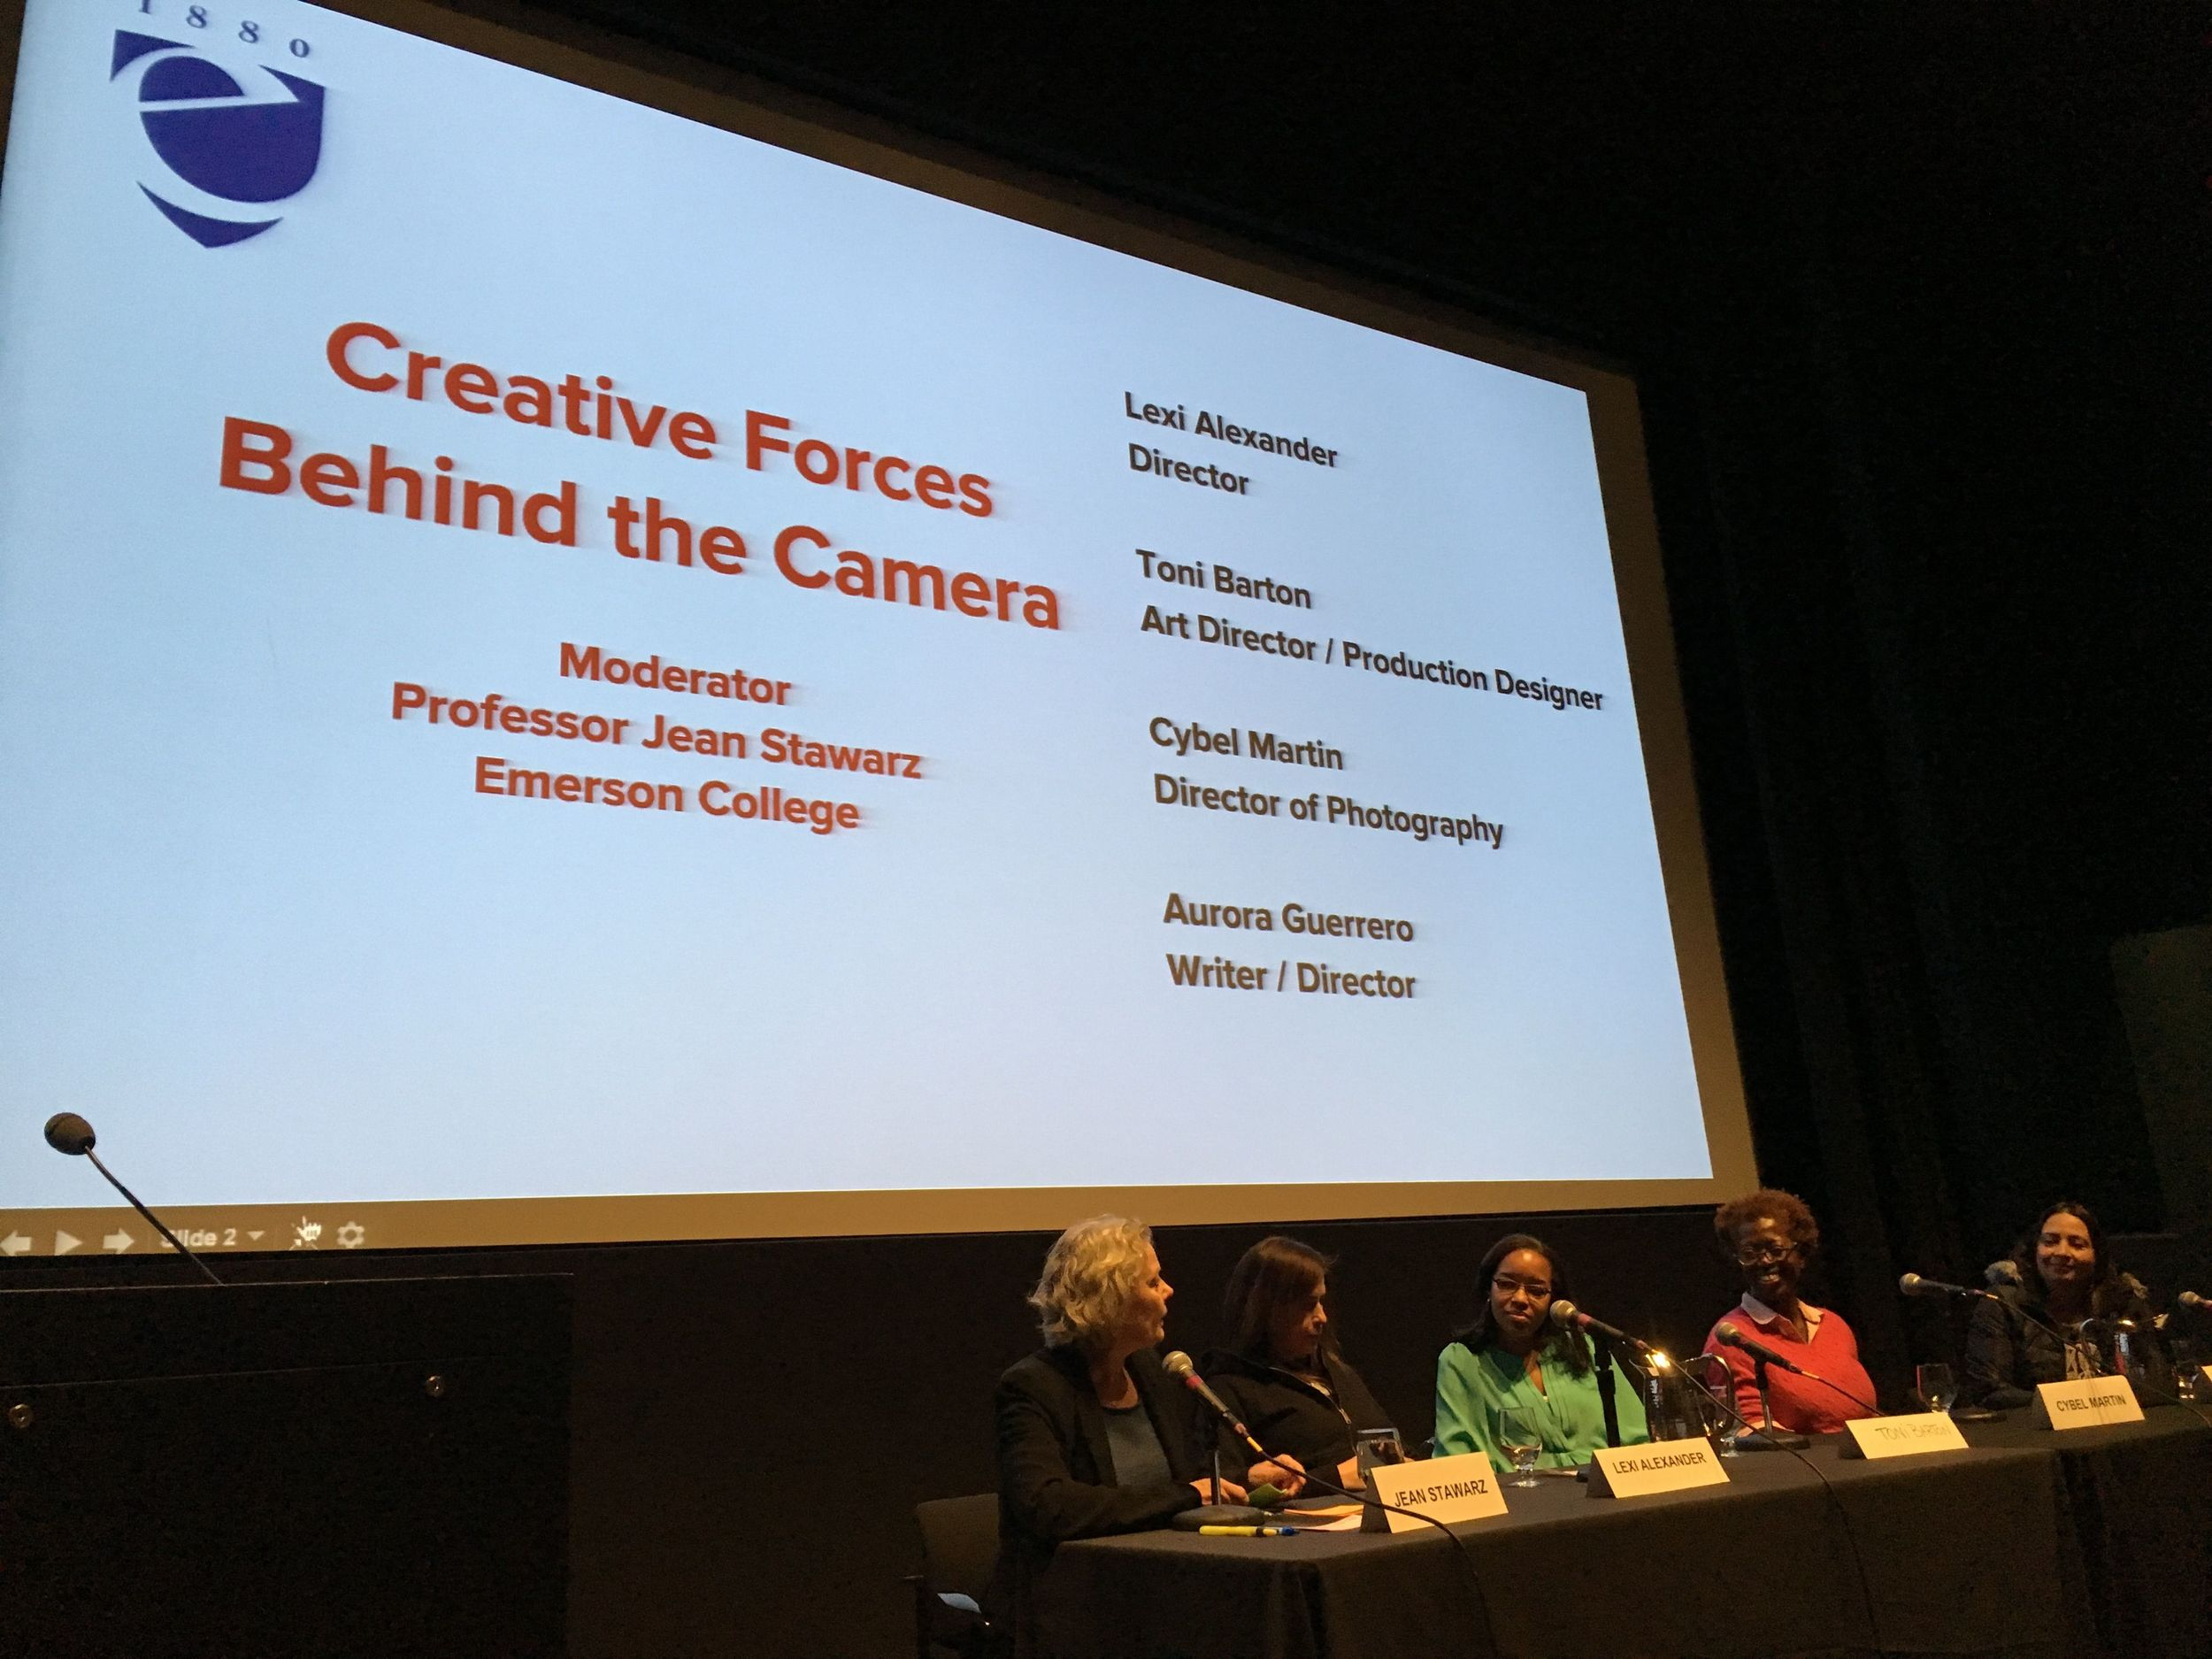 From L to R: Professor and screenwriter Jean Stawarz moderates panel with Lexi Alexander, Toni Barton, Cybel Martin and Aurora Guerrero.